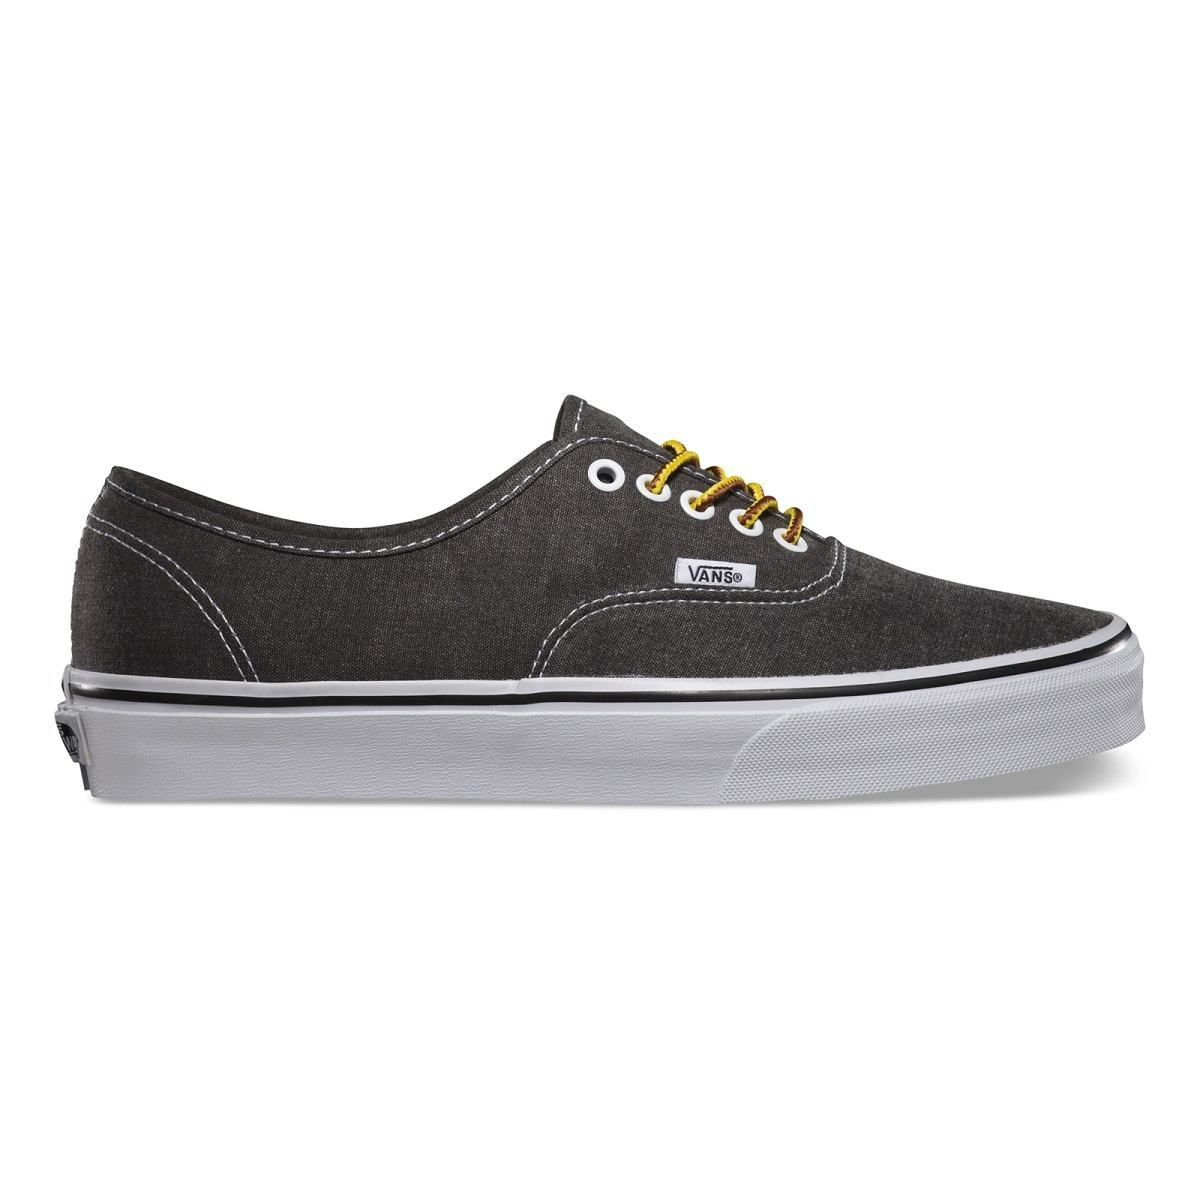 vans authentic schuhe turnschuhe sneaker damen herren. Black Bedroom Furniture Sets. Home Design Ideas